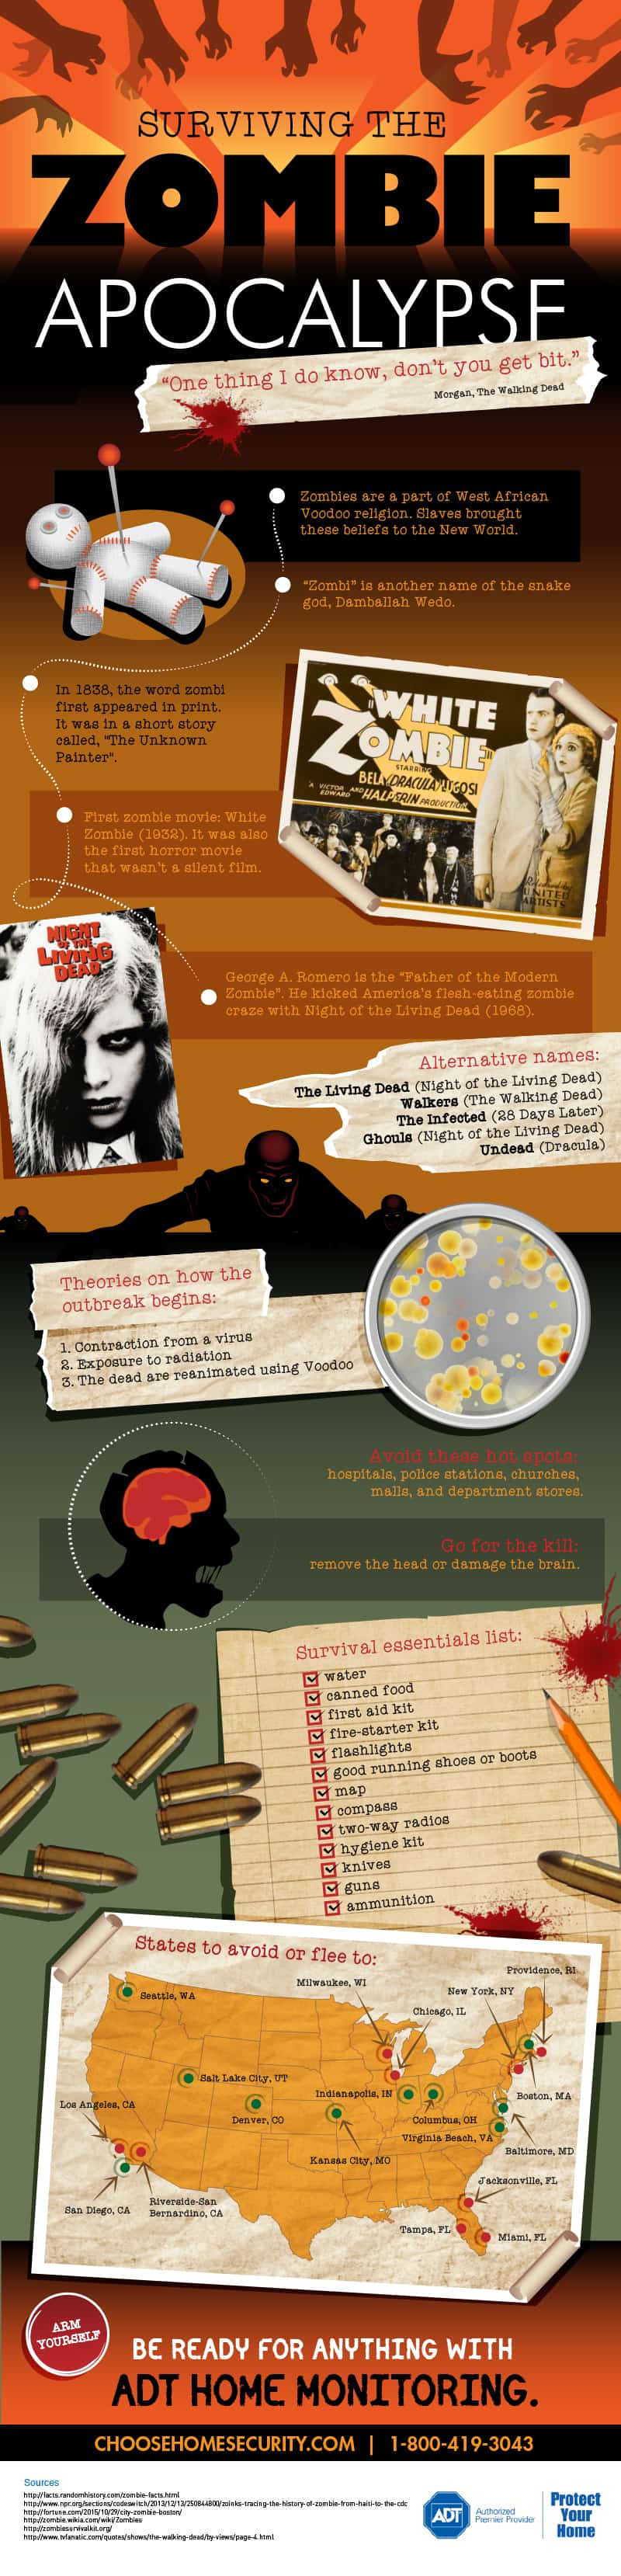 zombieinfographic 1 - The Zombie Craze is Here to Stay